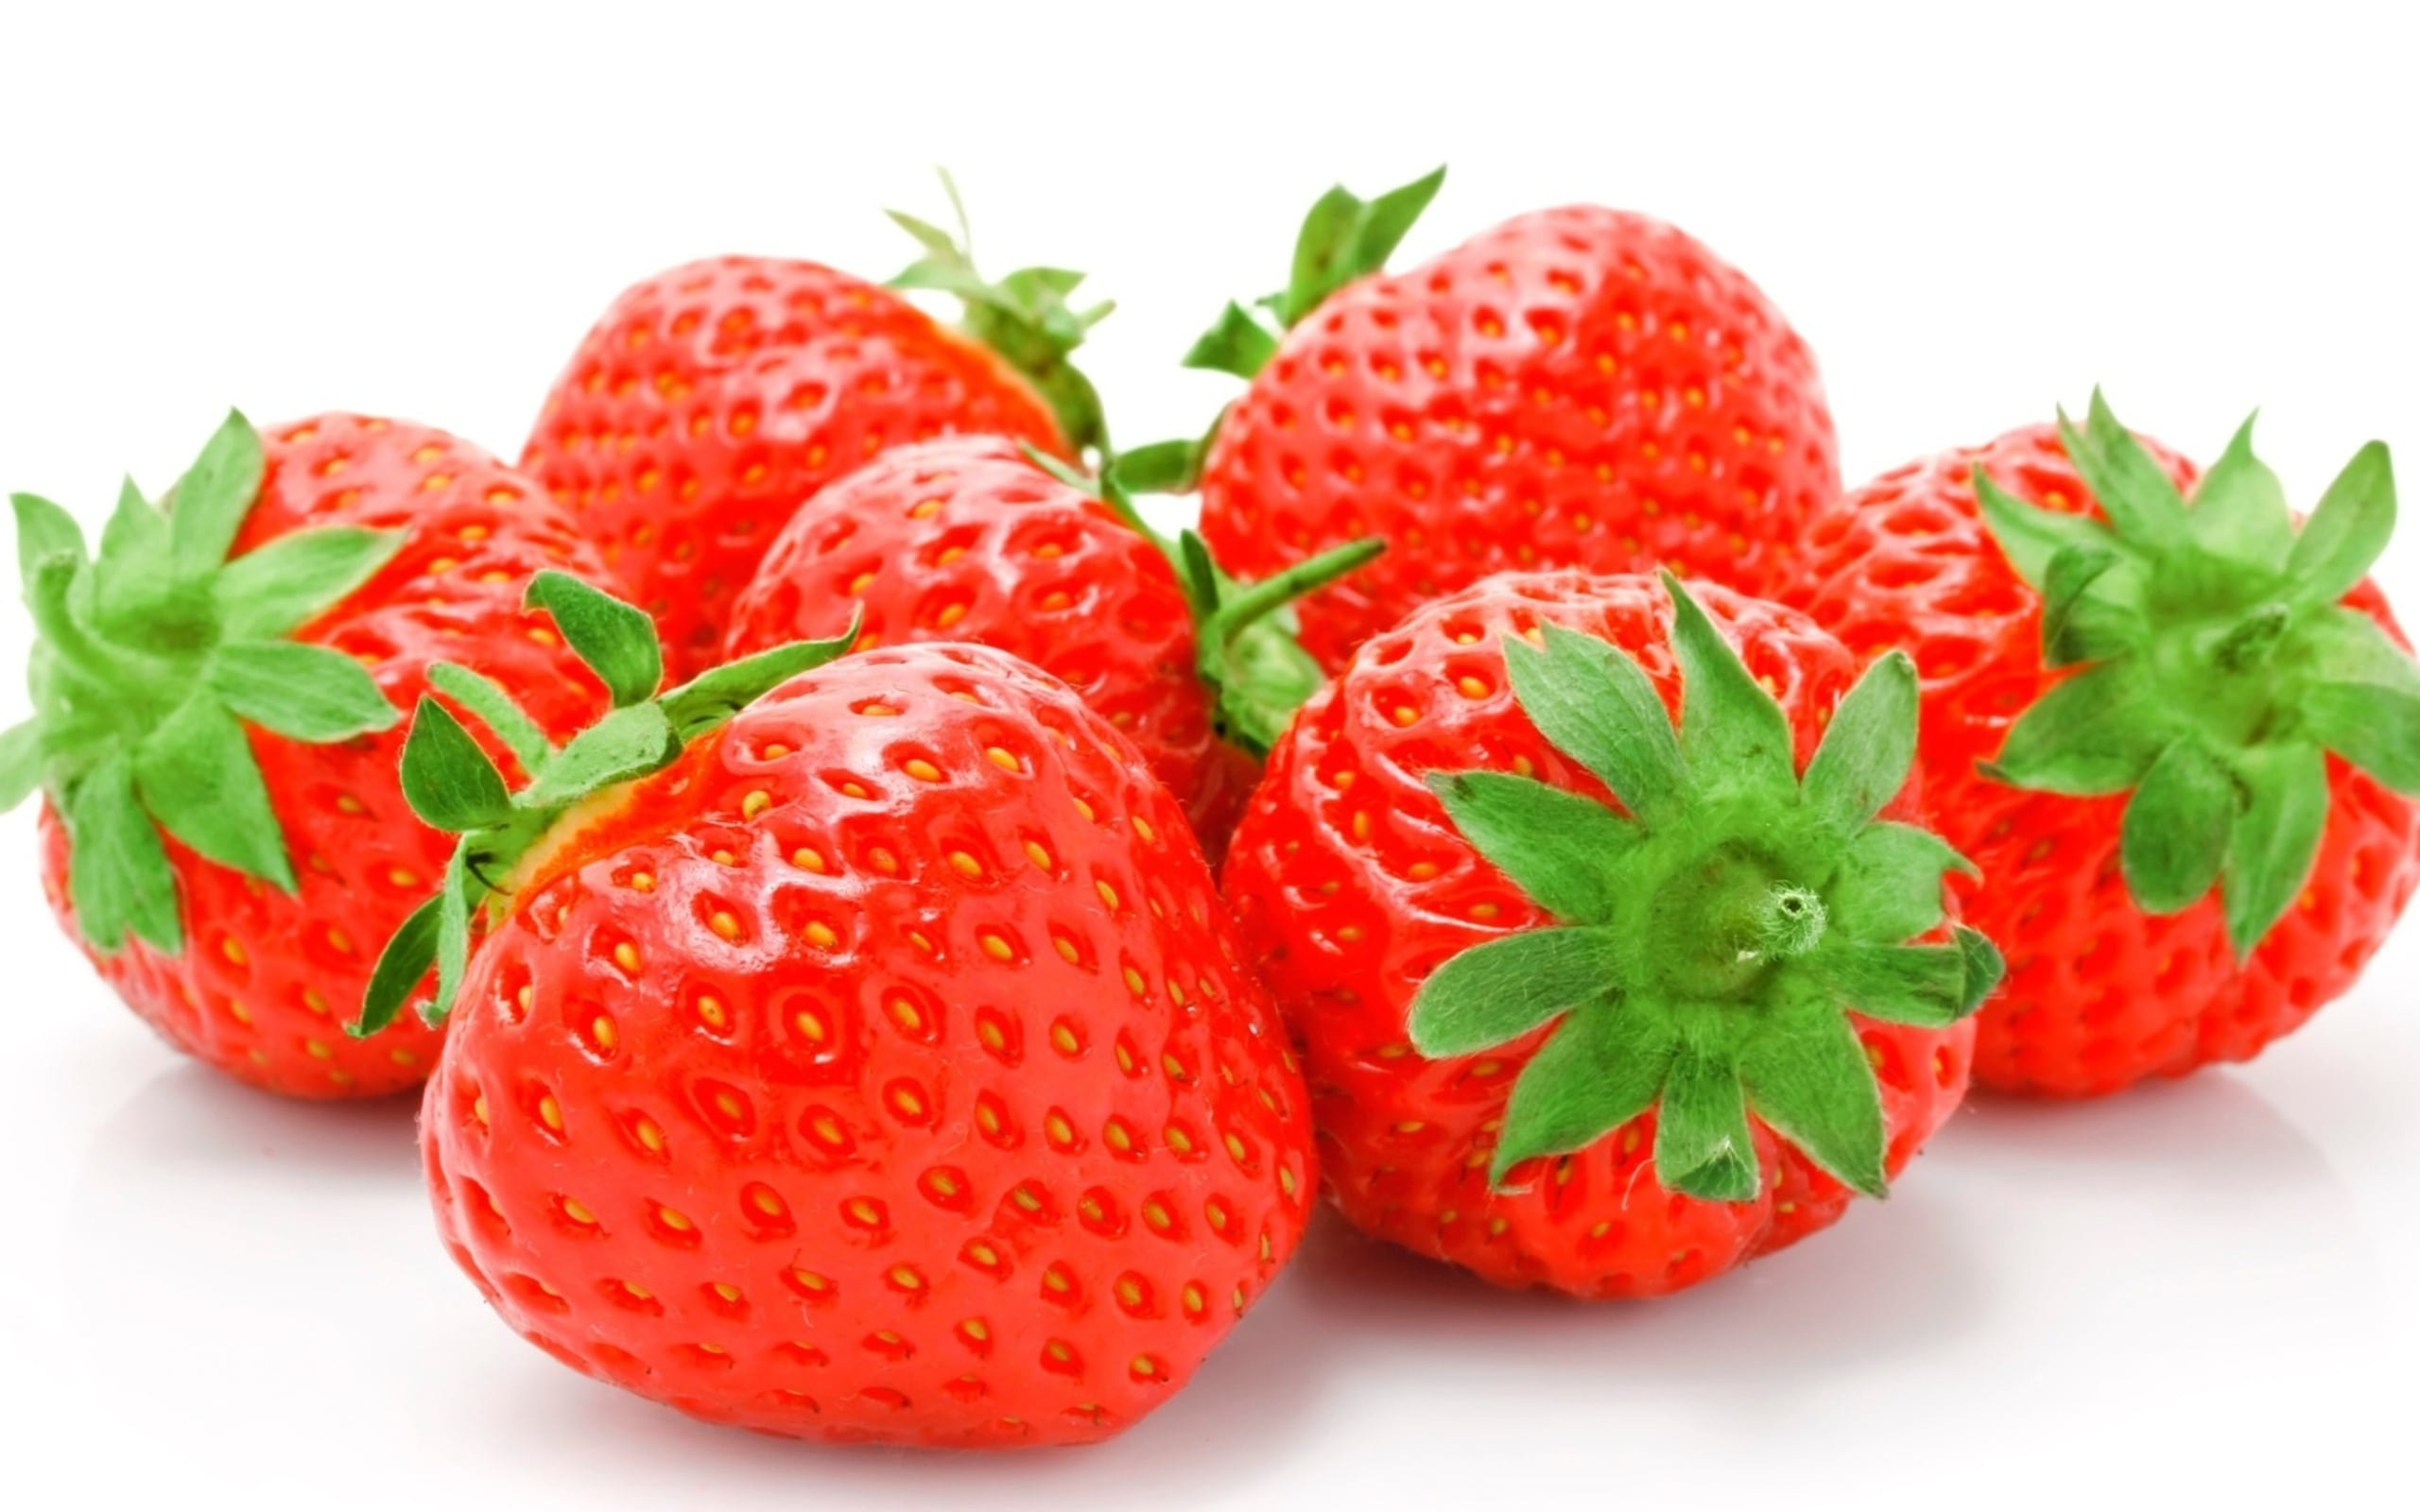 Strawberry widescreen wallpapers